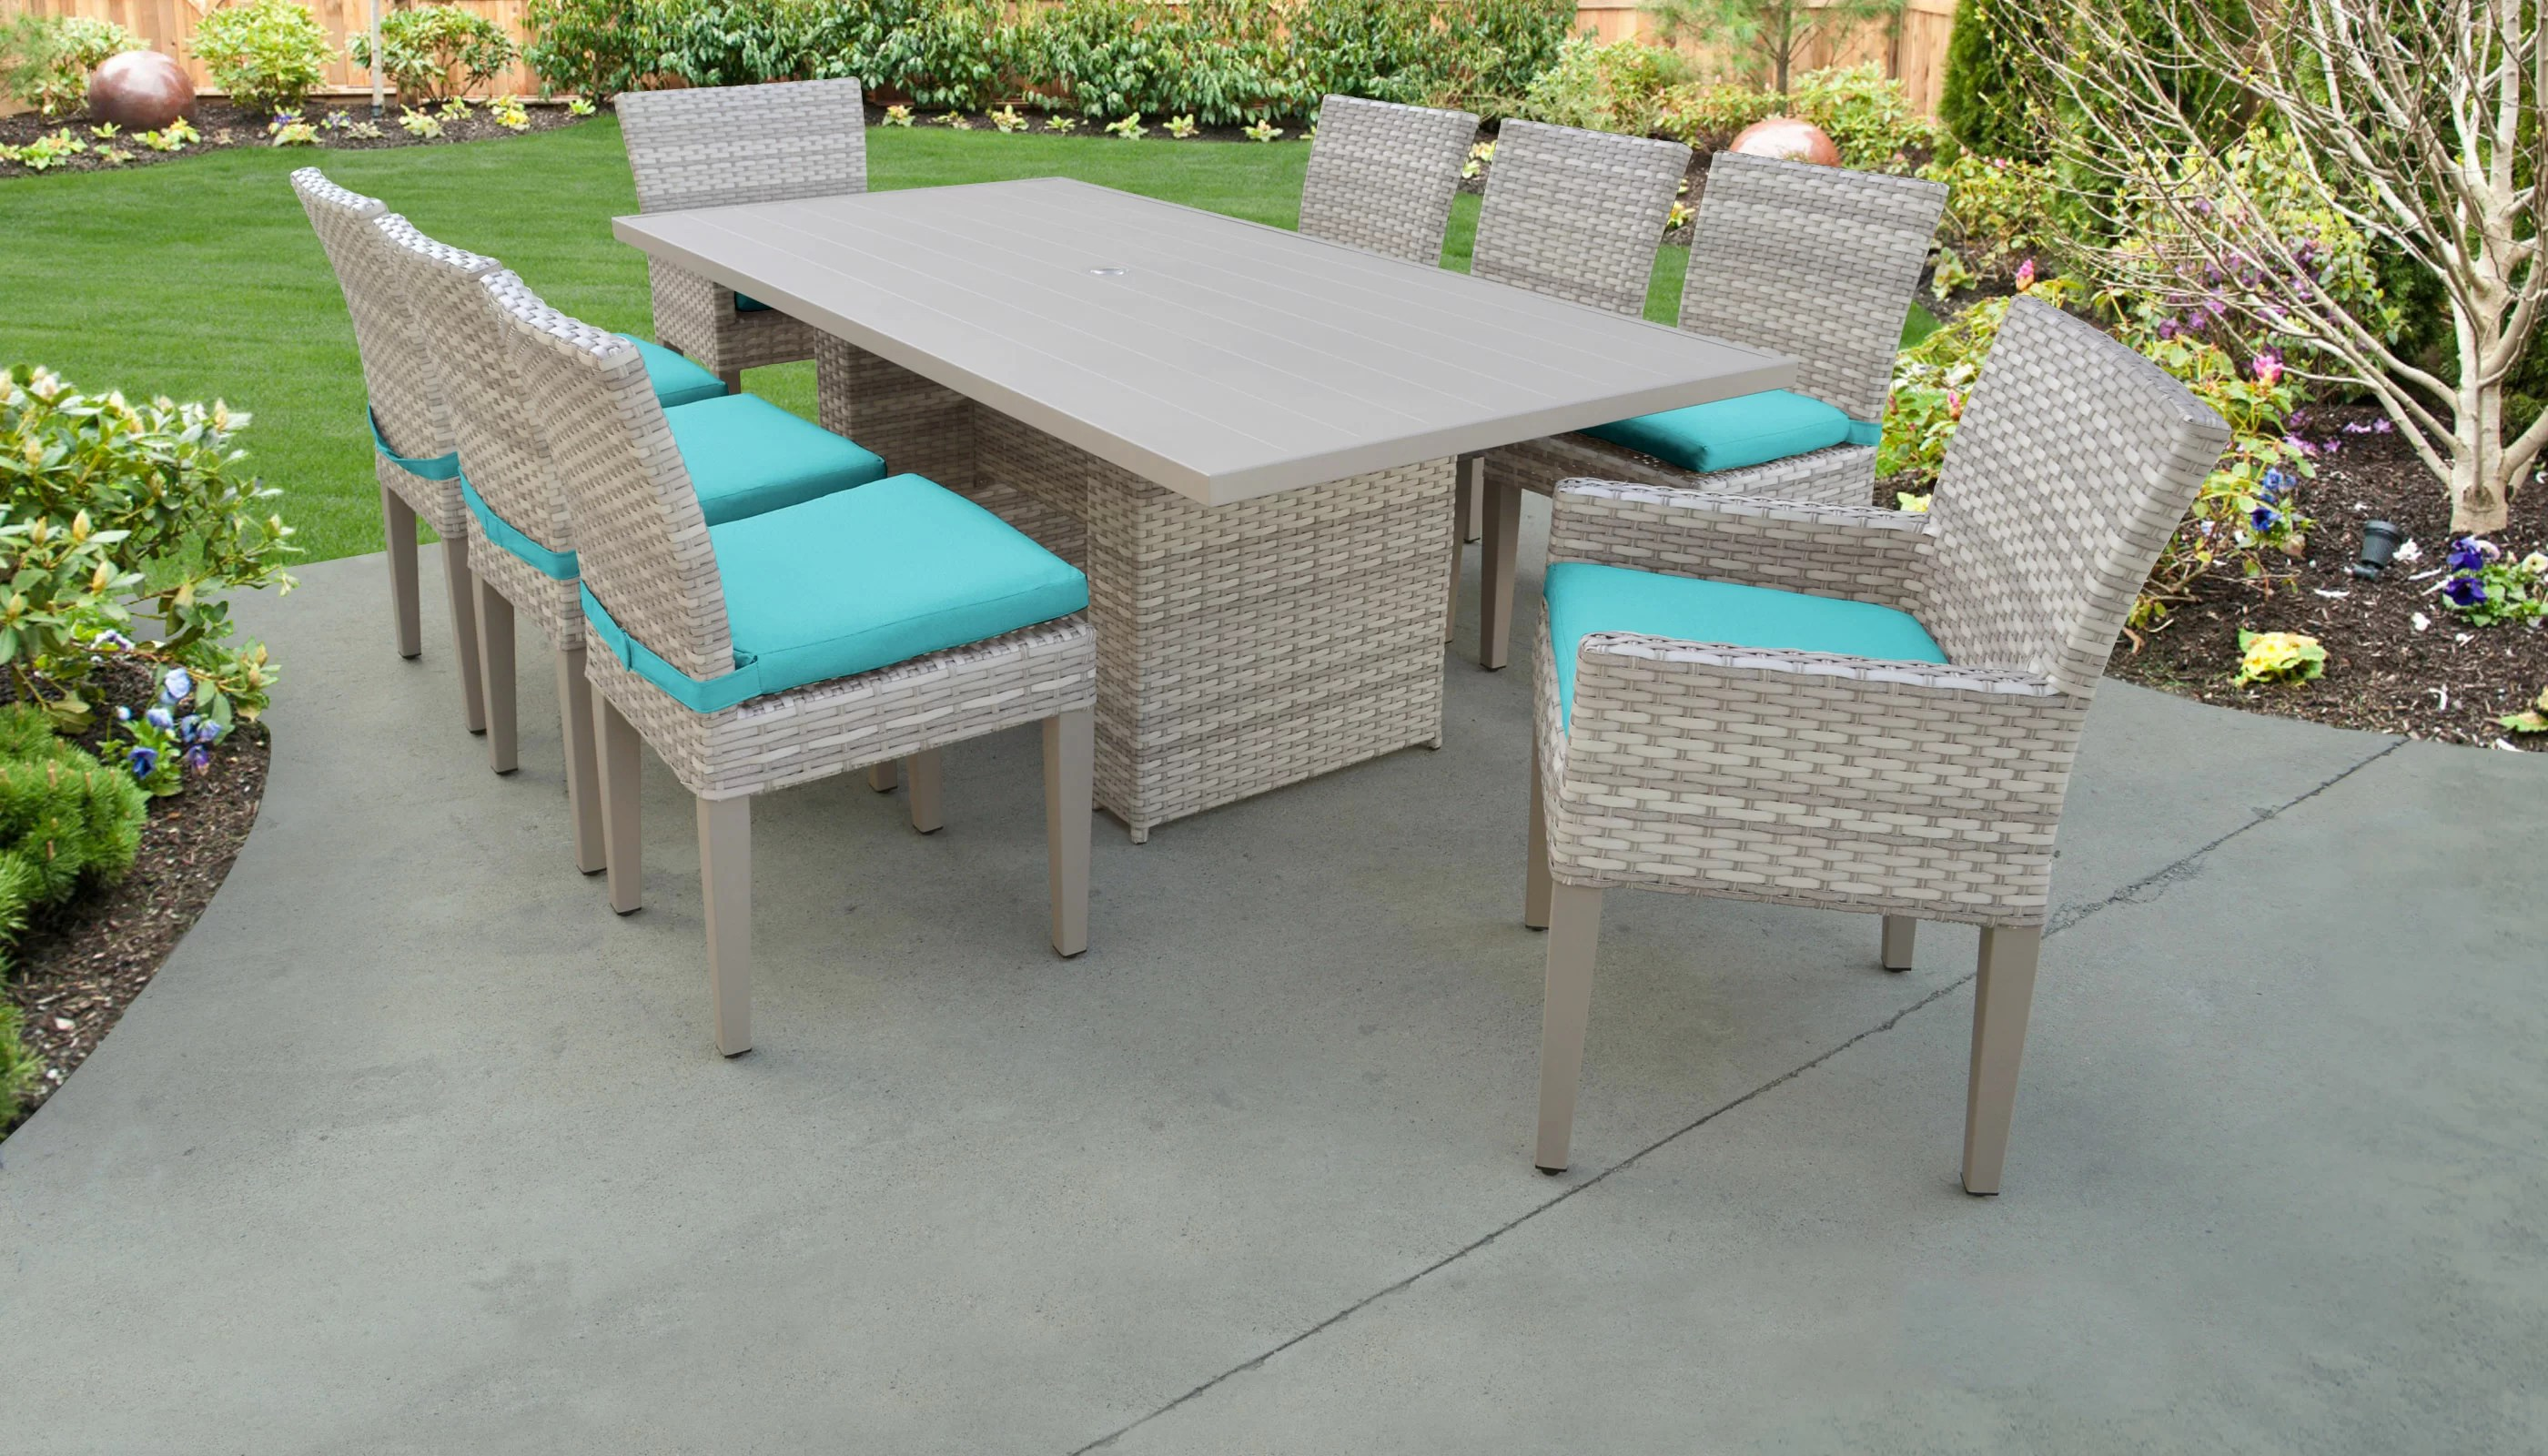 9 Piece Outdoor Dining Set Fairmont 9 Piece Outdoor Patio Dining Set With Cushions